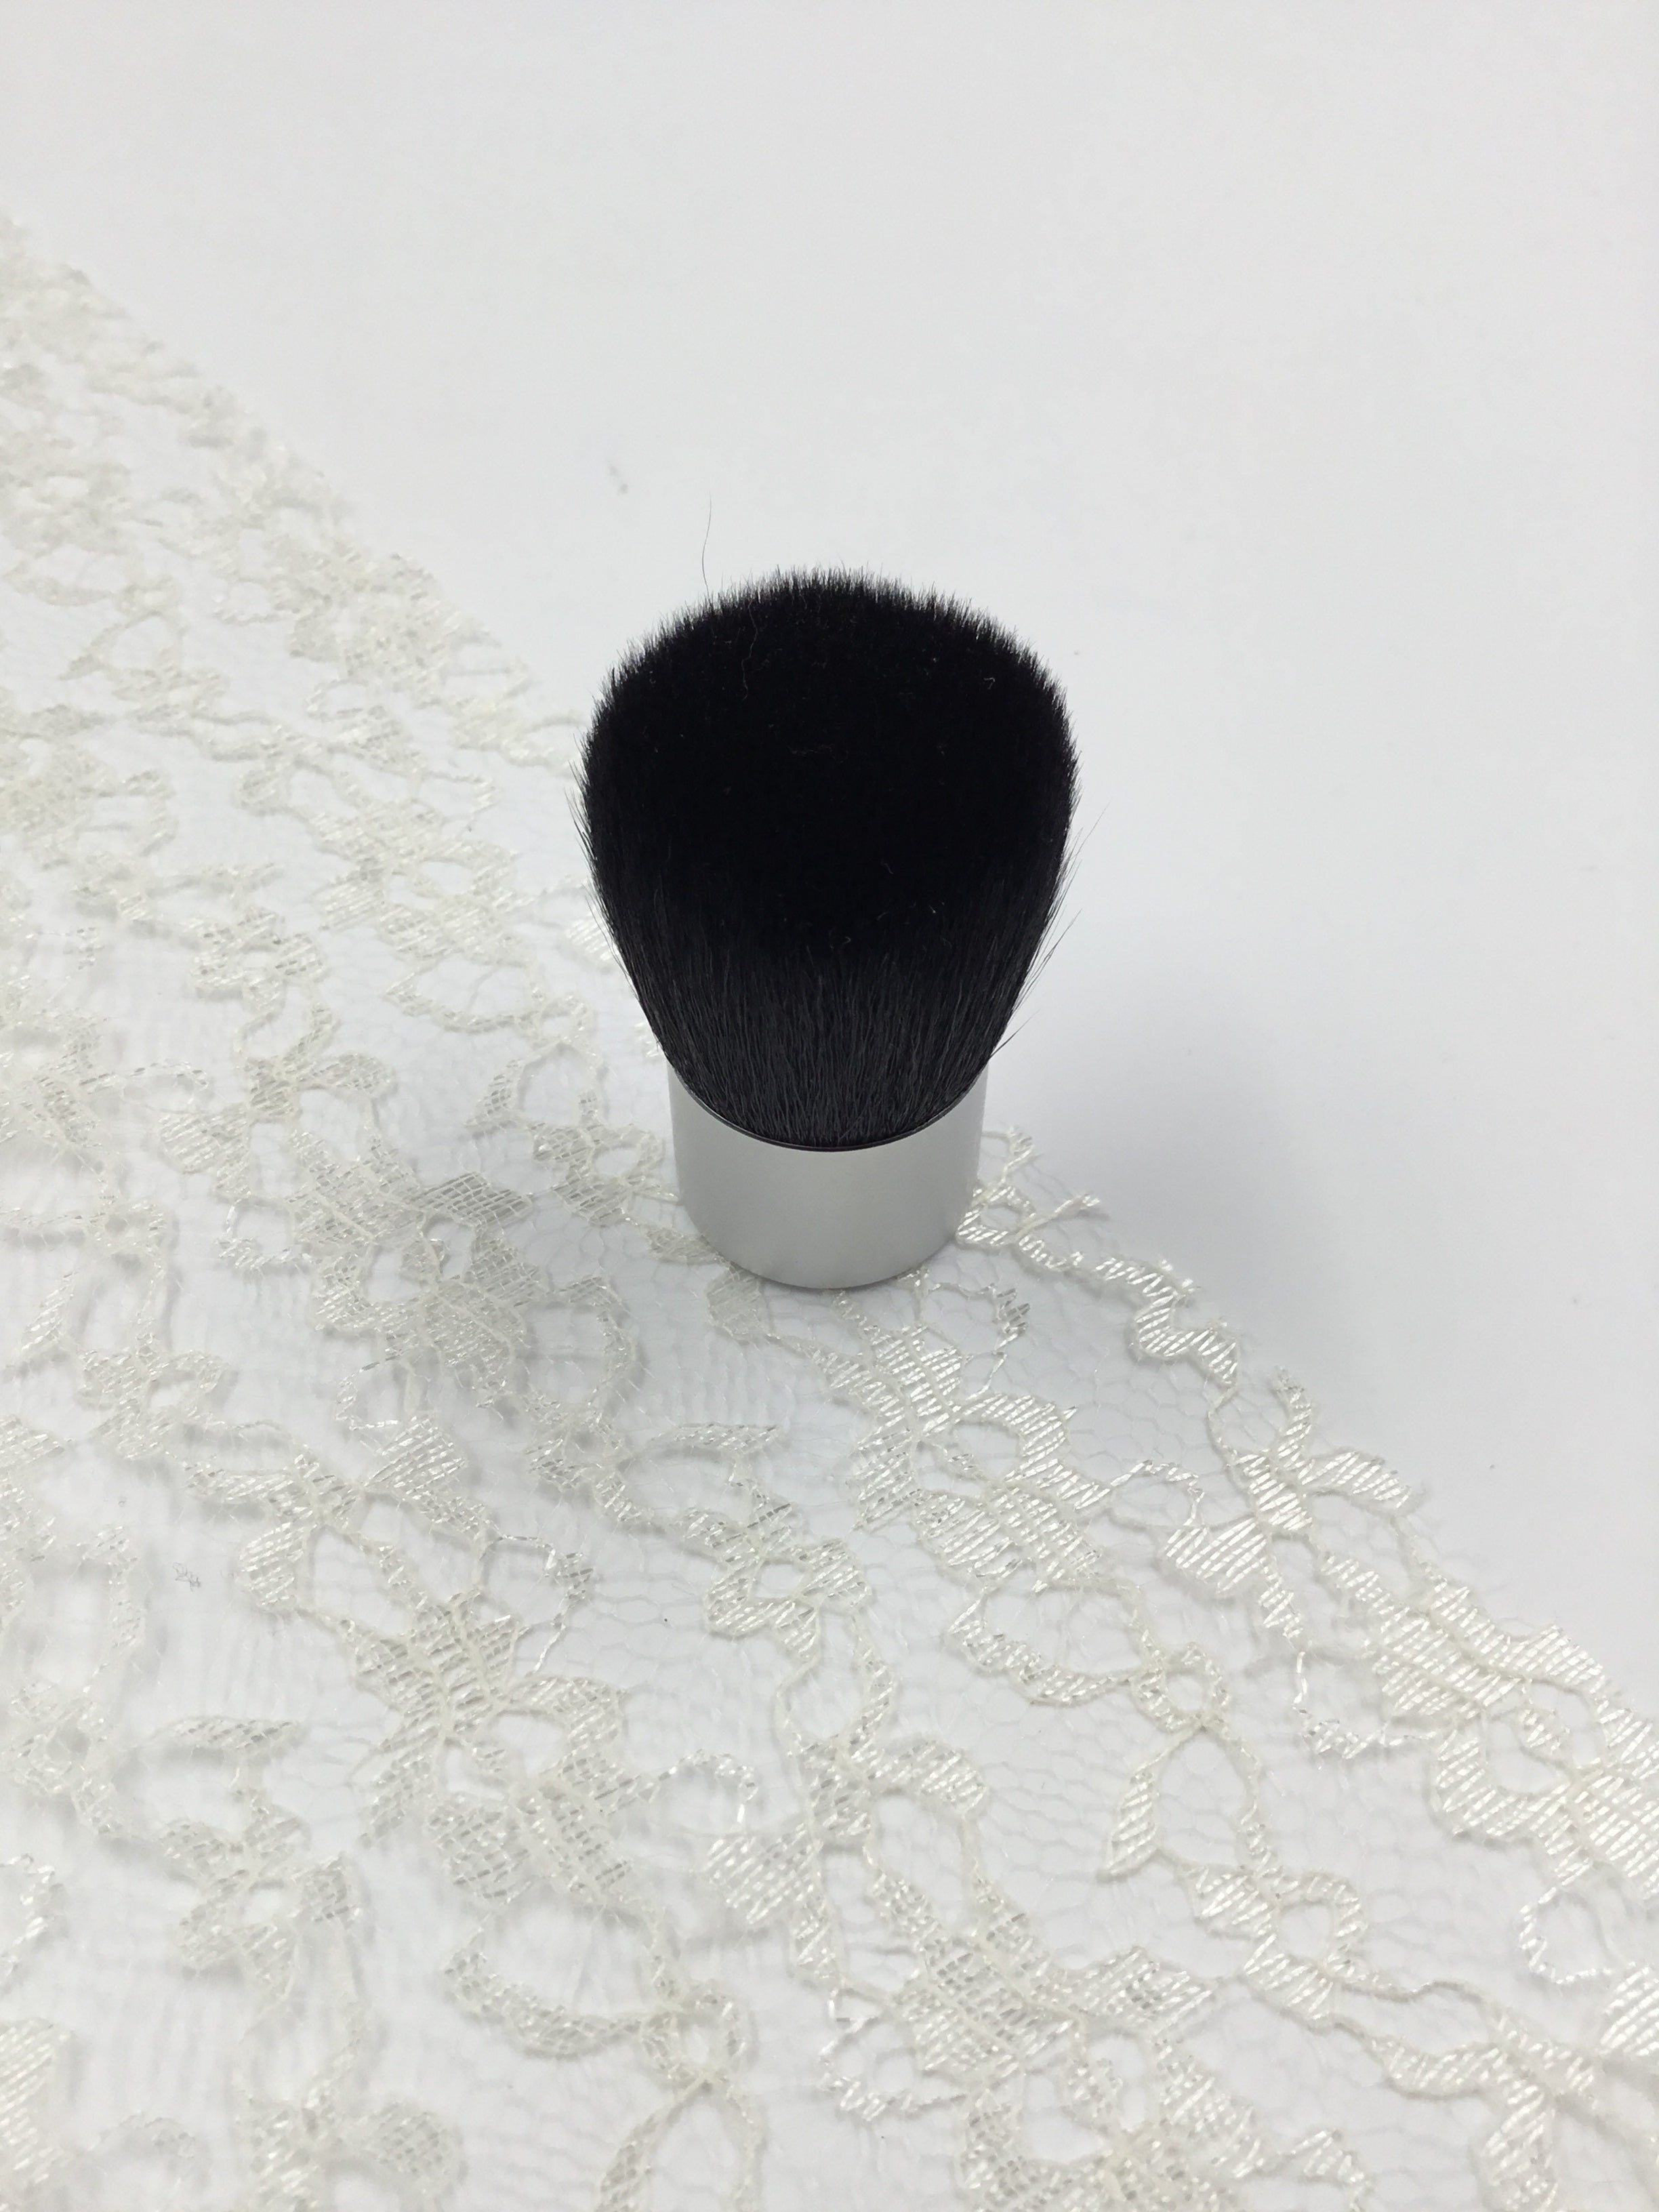 Kabuki Makeup Powder Brush